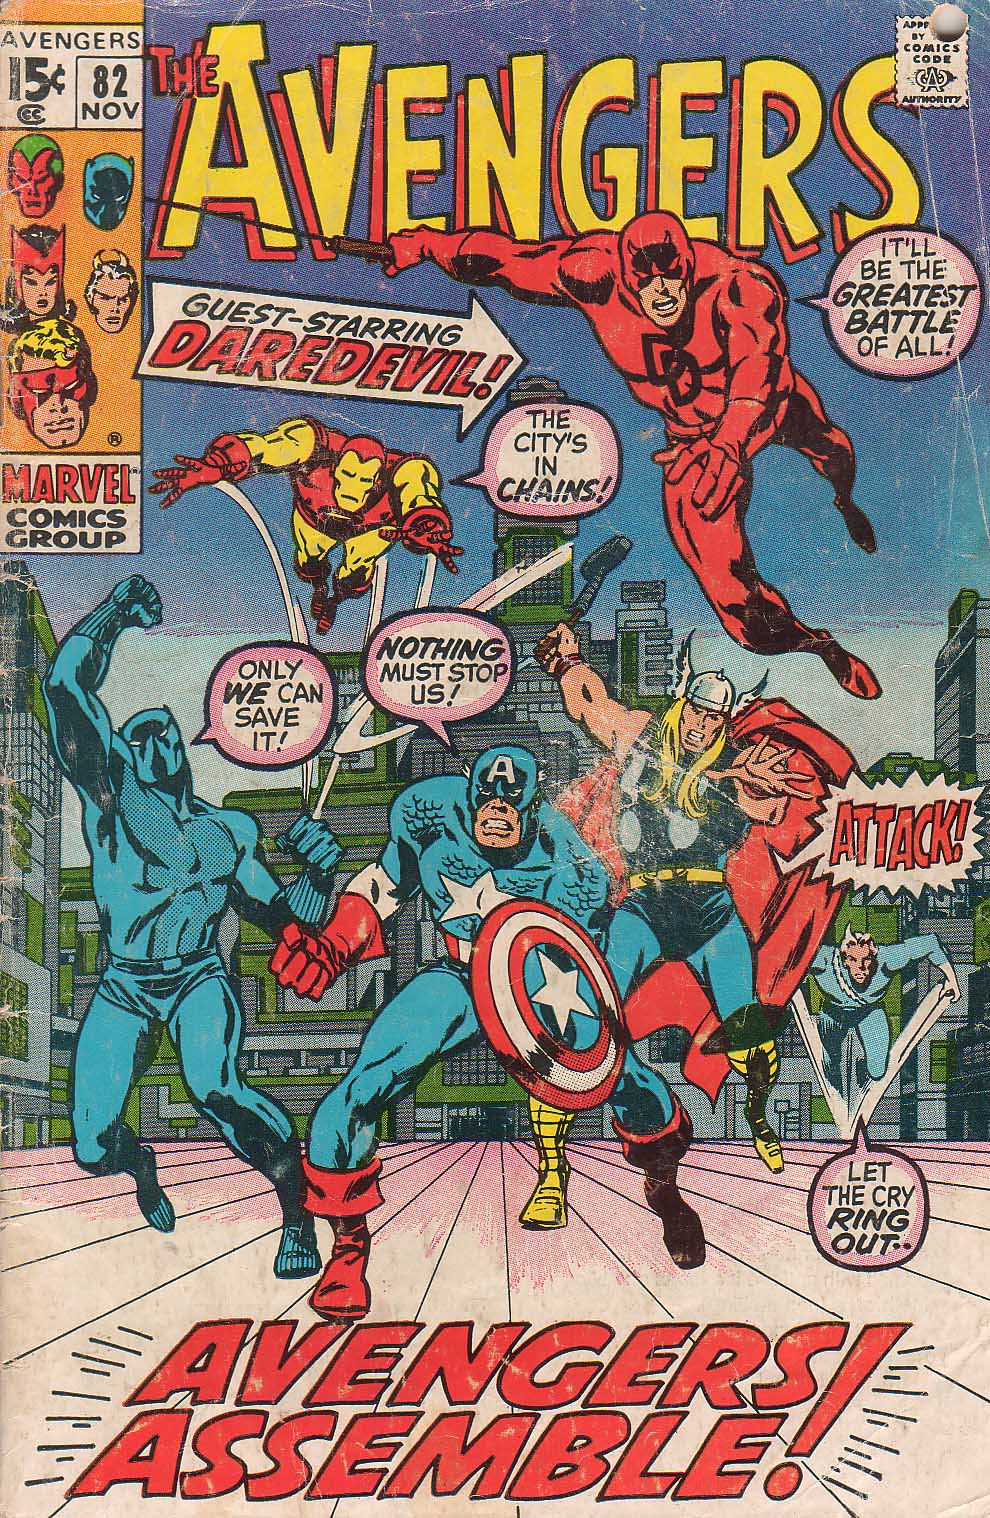 The Avengers (1963) 82 Page 1